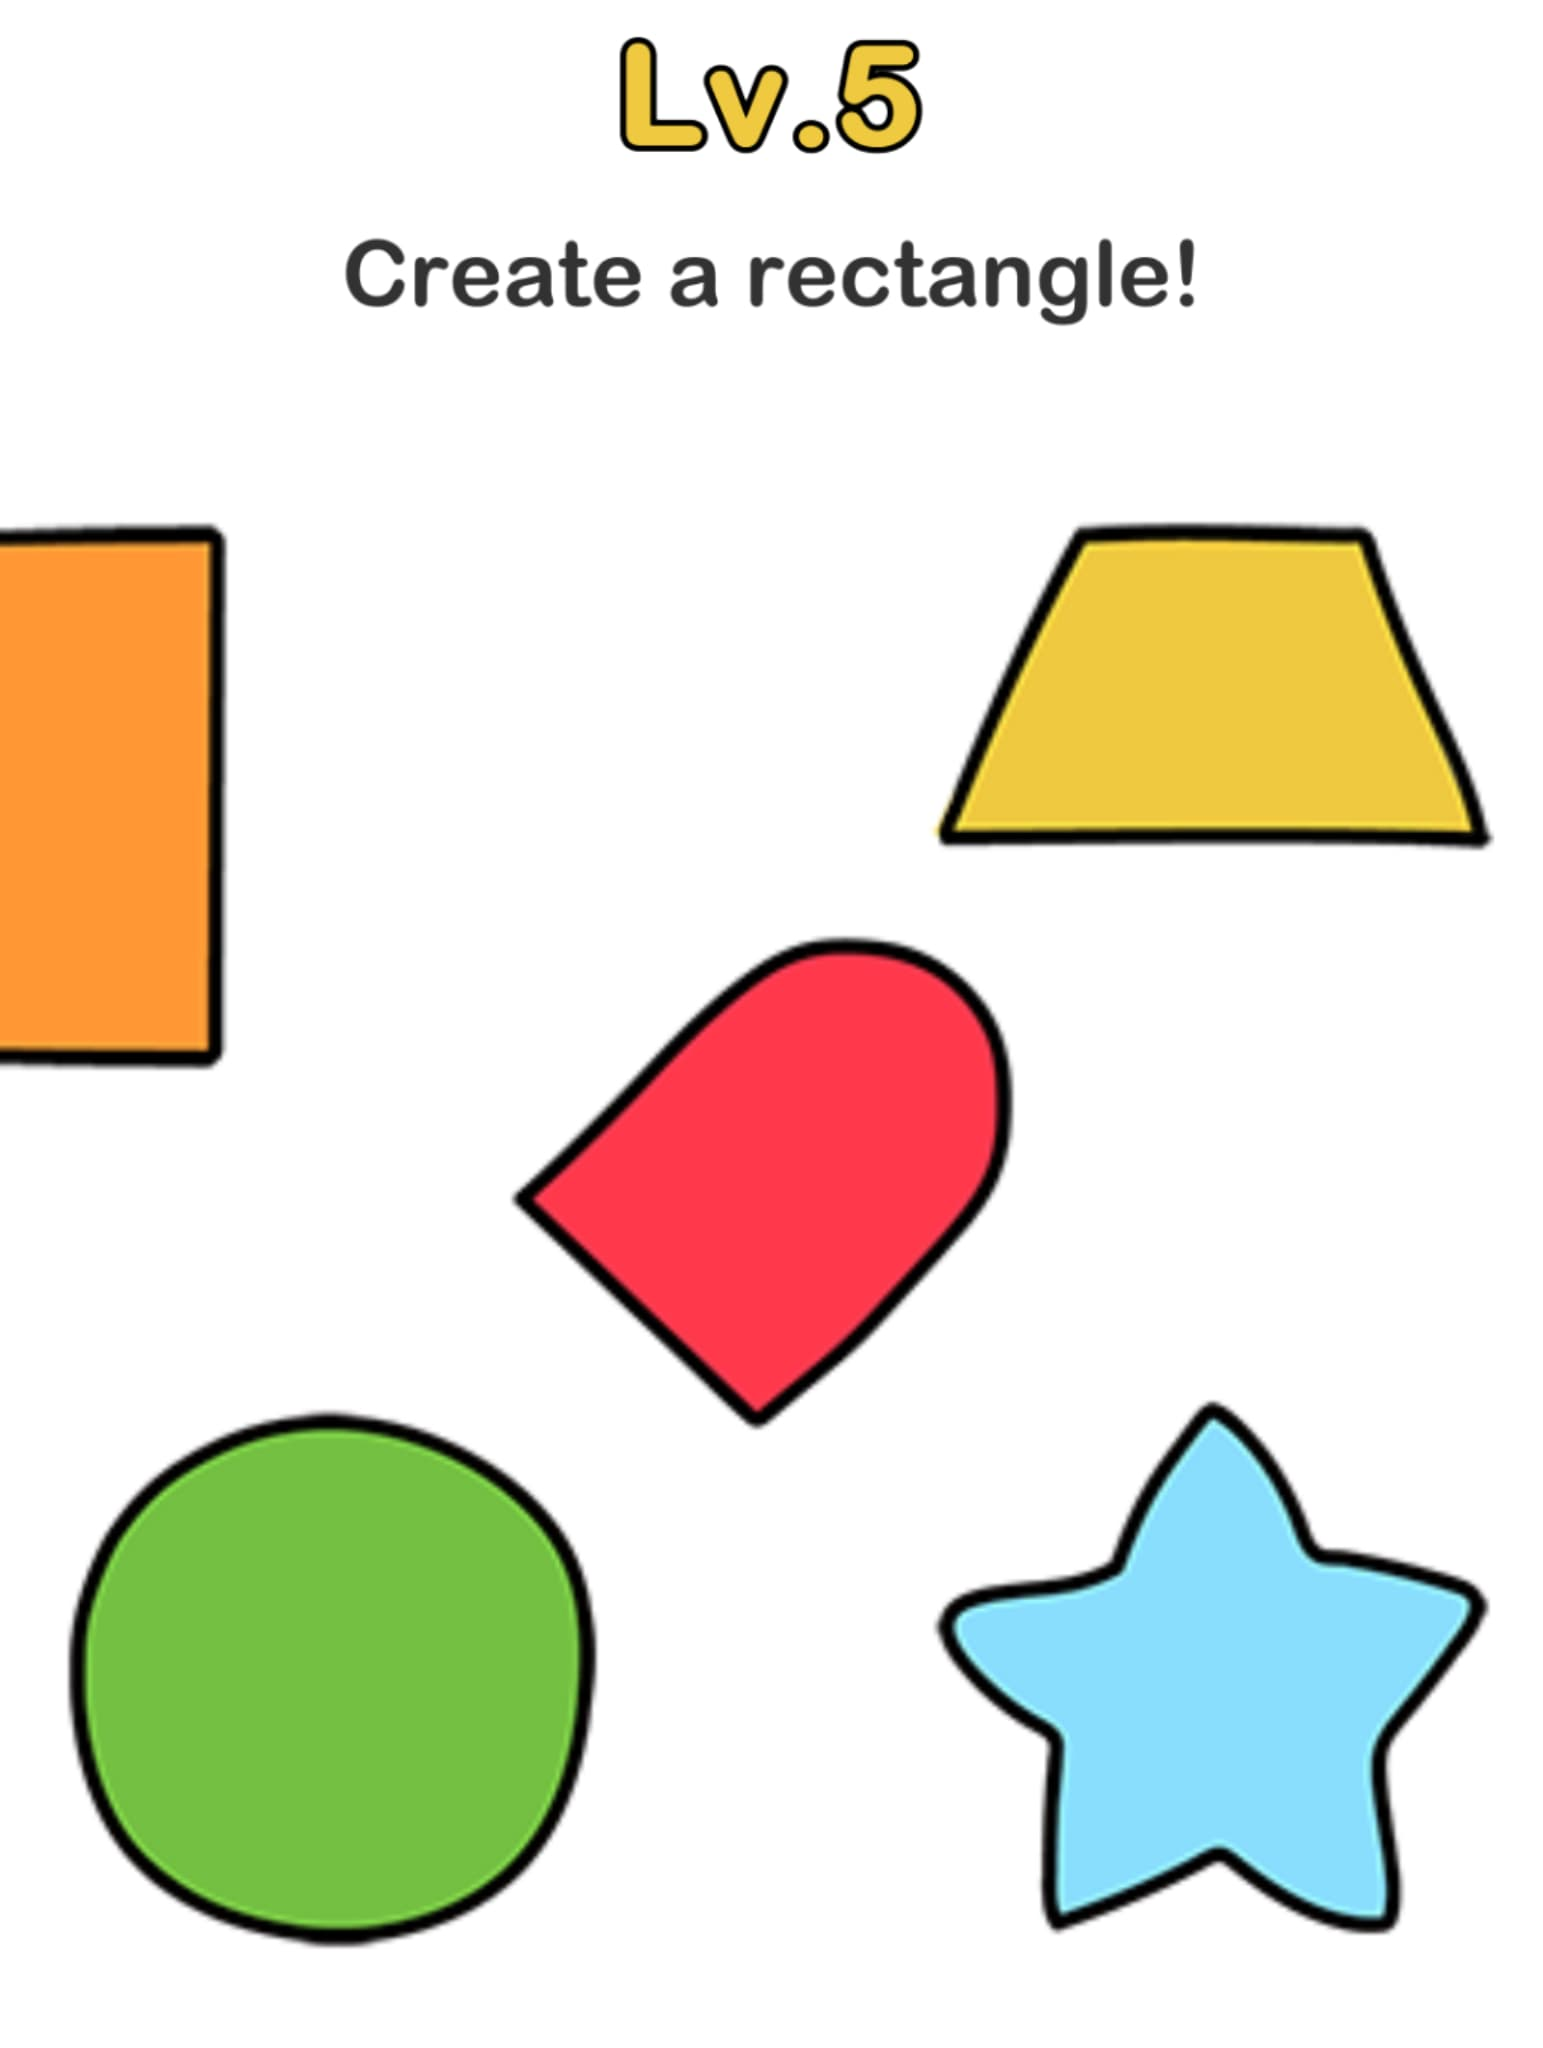 Brain out level 5 create a rectangle